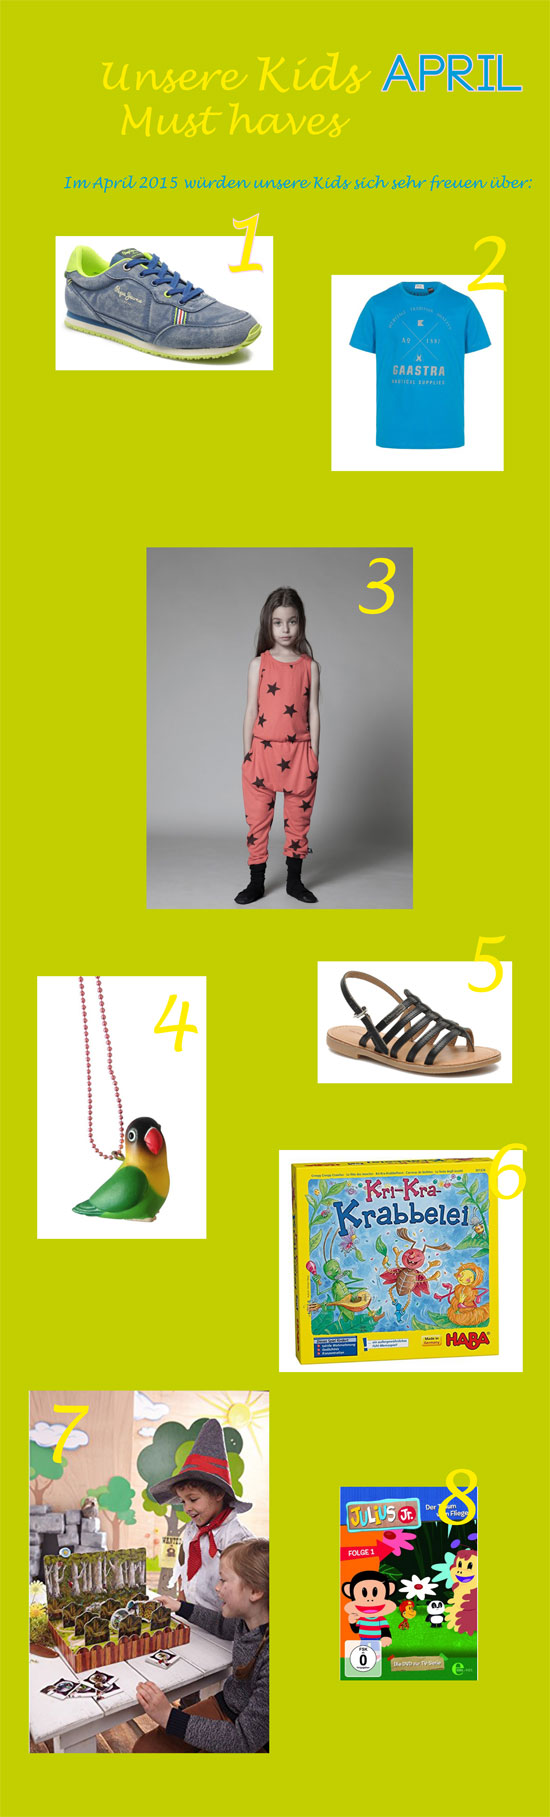 April-Kids-Must-haves-2015